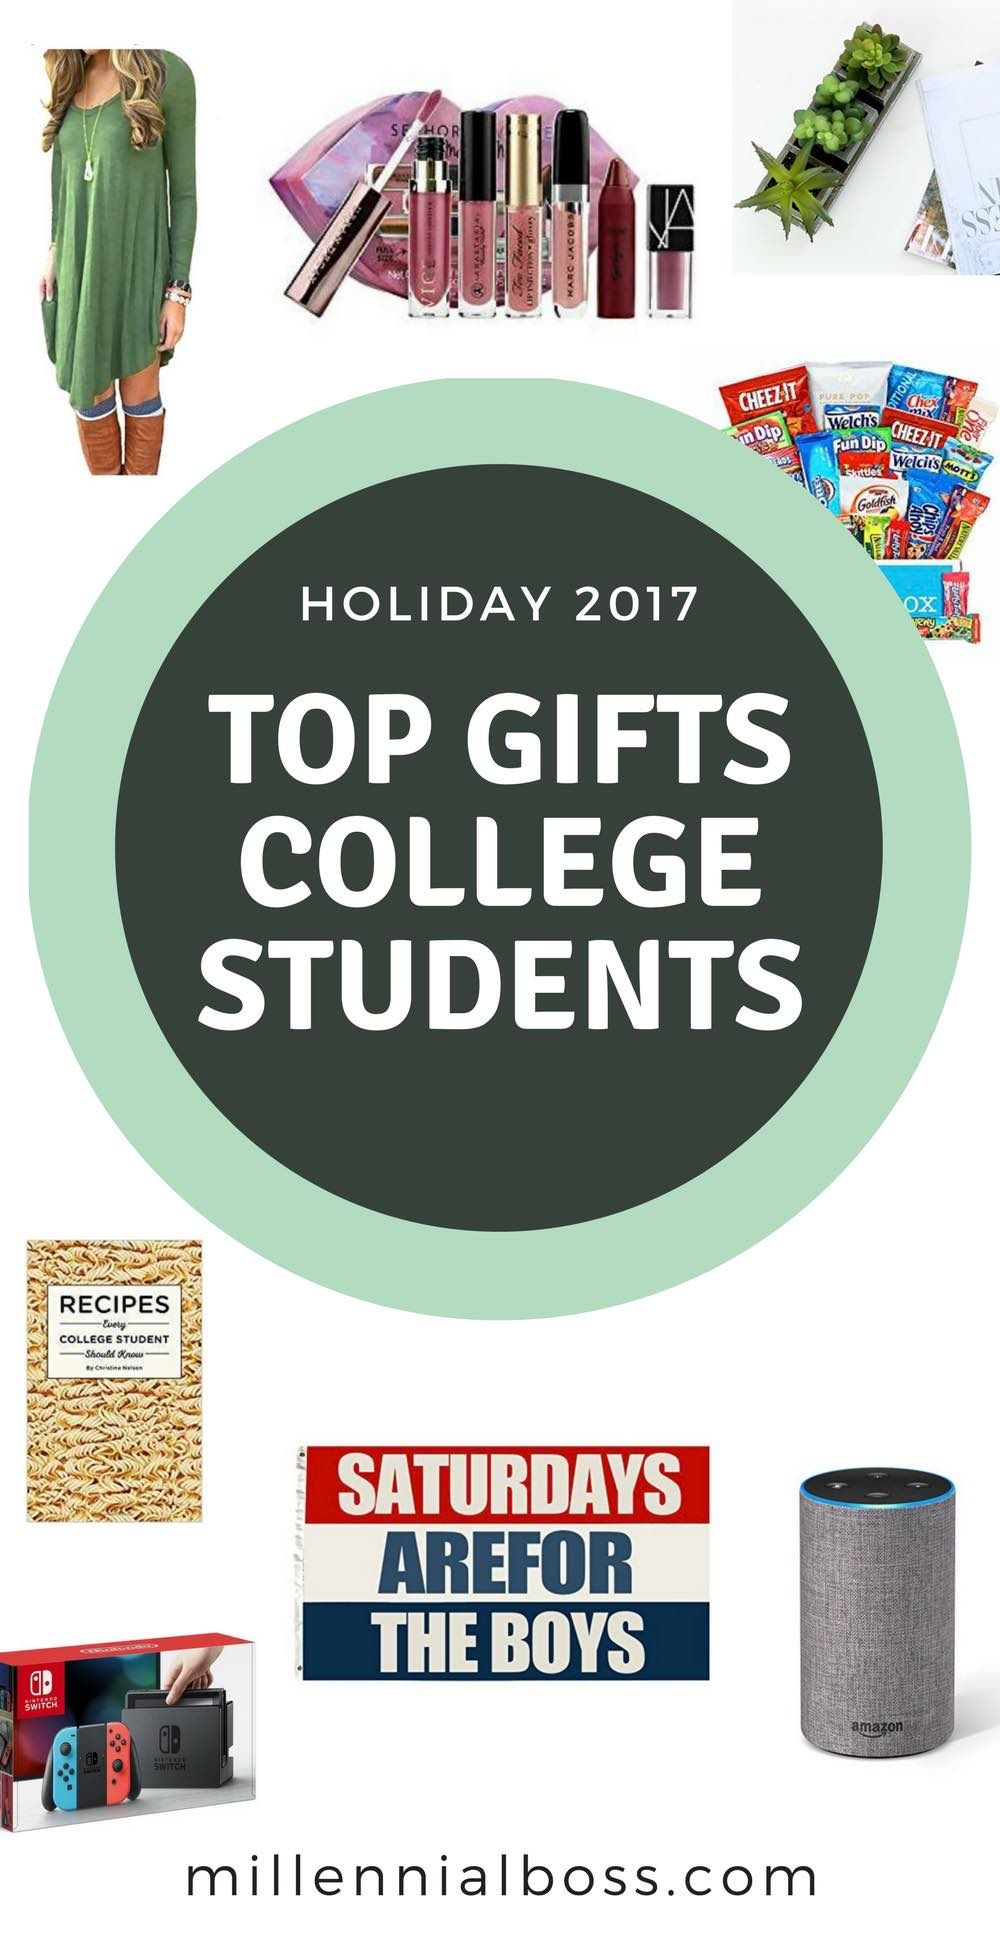 Christmas Gifts For College Students.The Ultimate Gift Guide For College Students Christmas